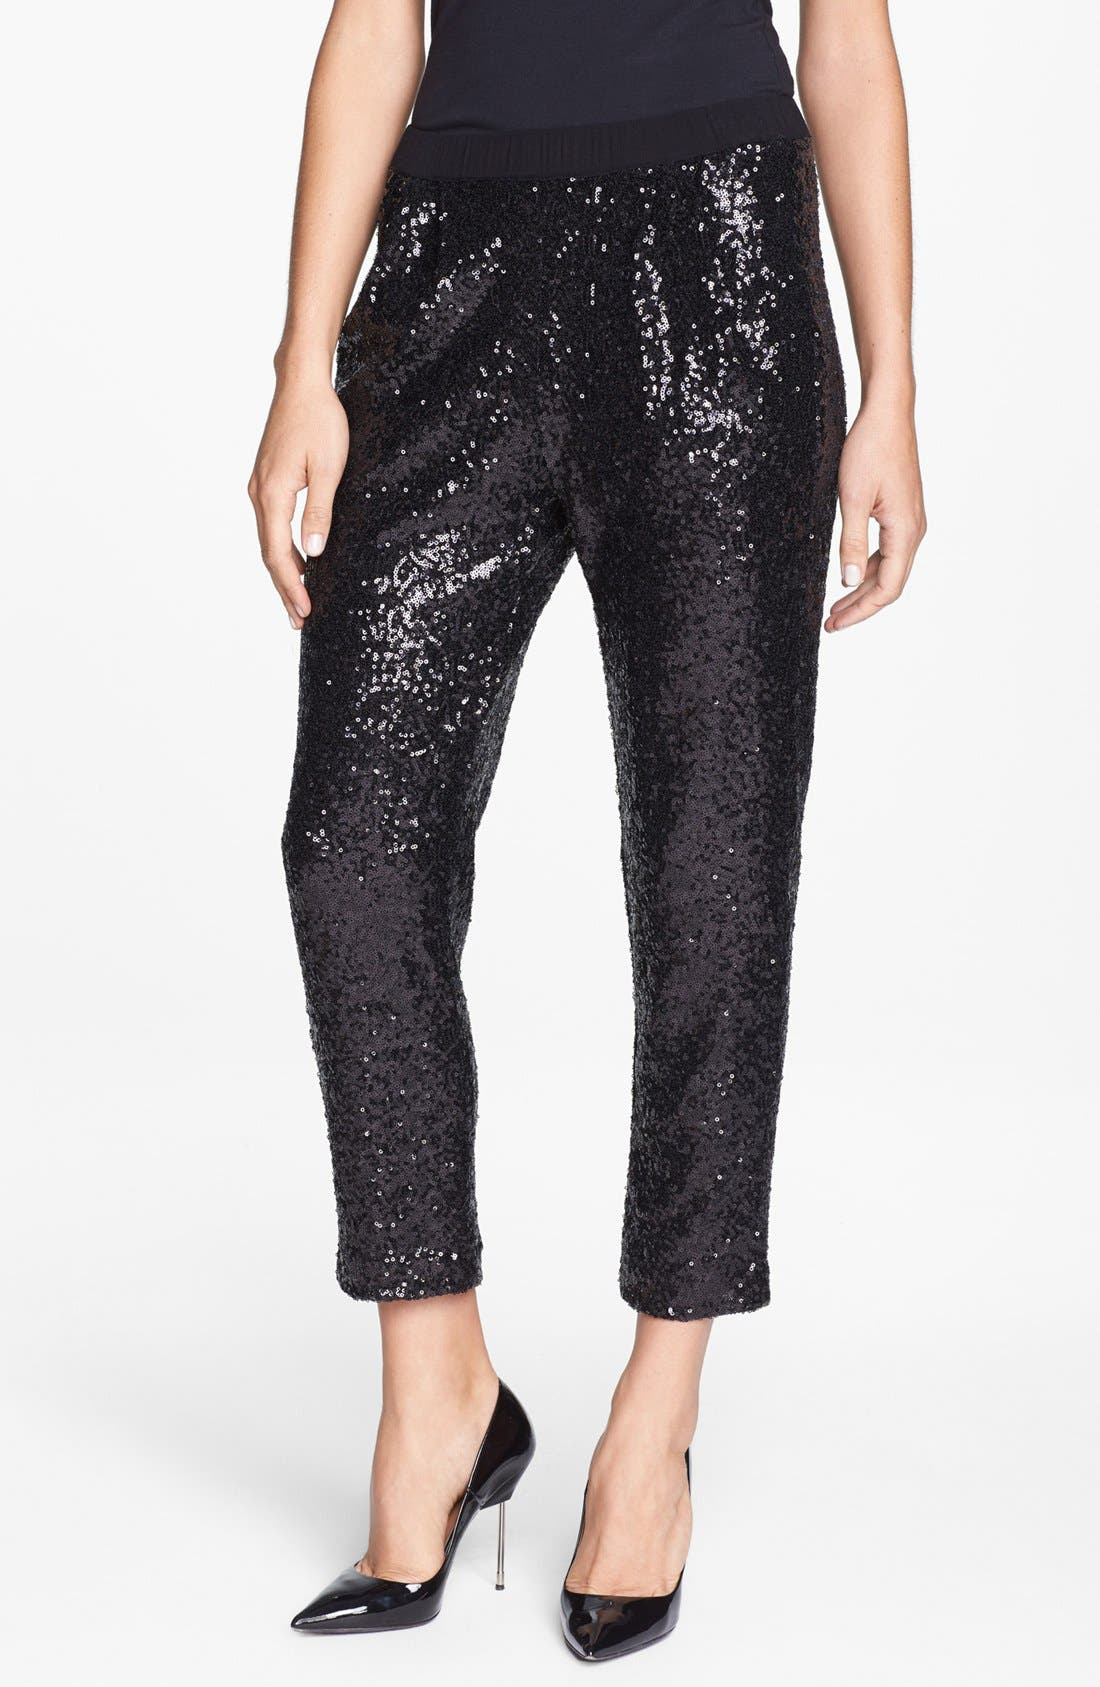 ELLA MOSS Sequin Slouchy Trousers, Main, color, 001